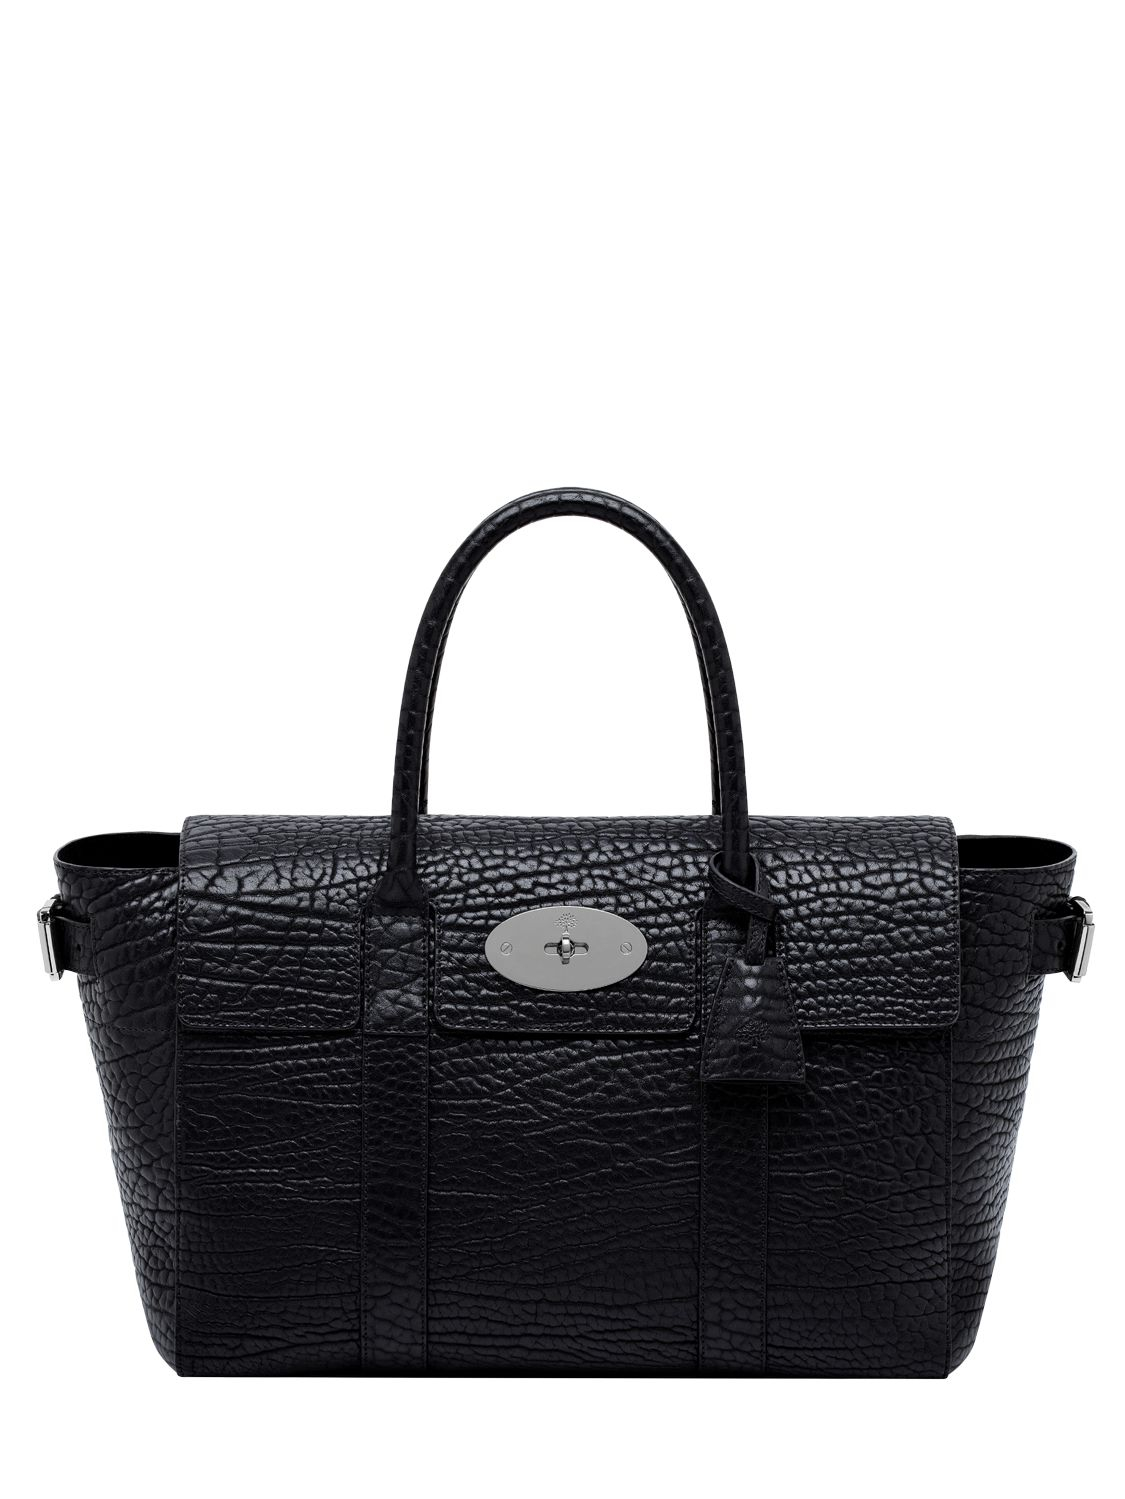 Mulberry Large Bayswater Shrunken Leather Bag in Black  0c1665a363b14